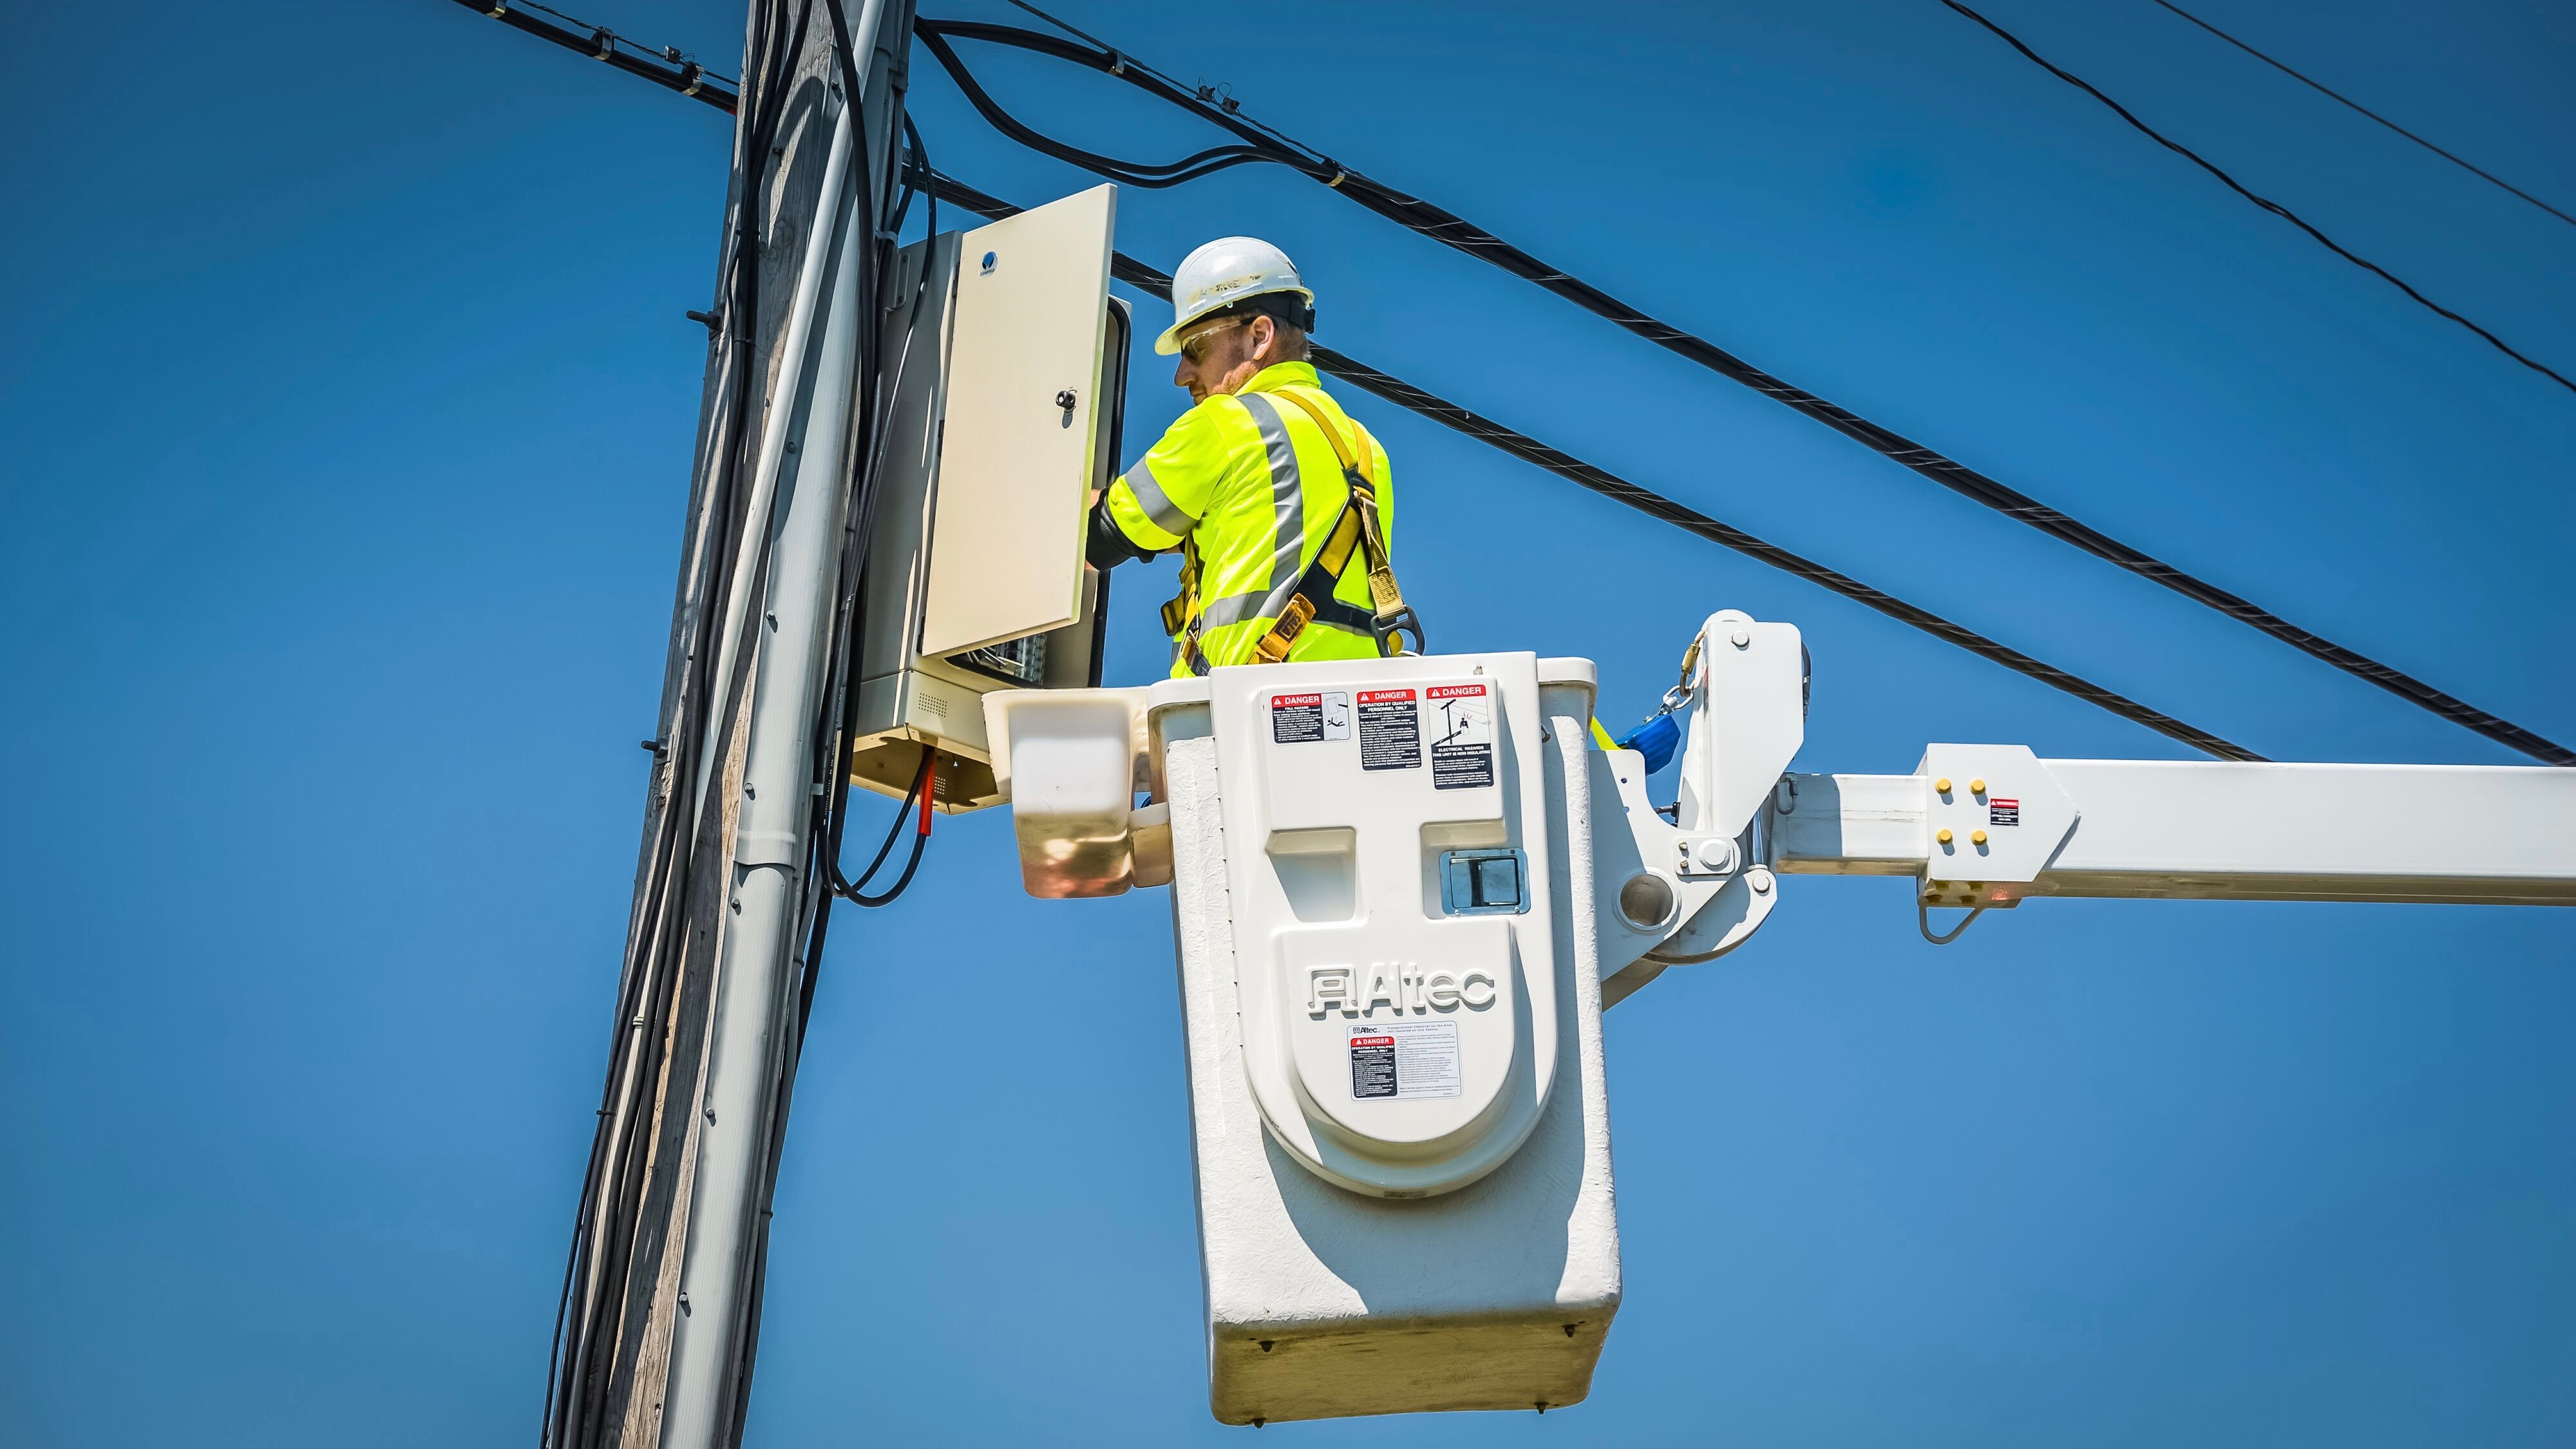 An Xfinity technician repairs equipment on a telephone pole.